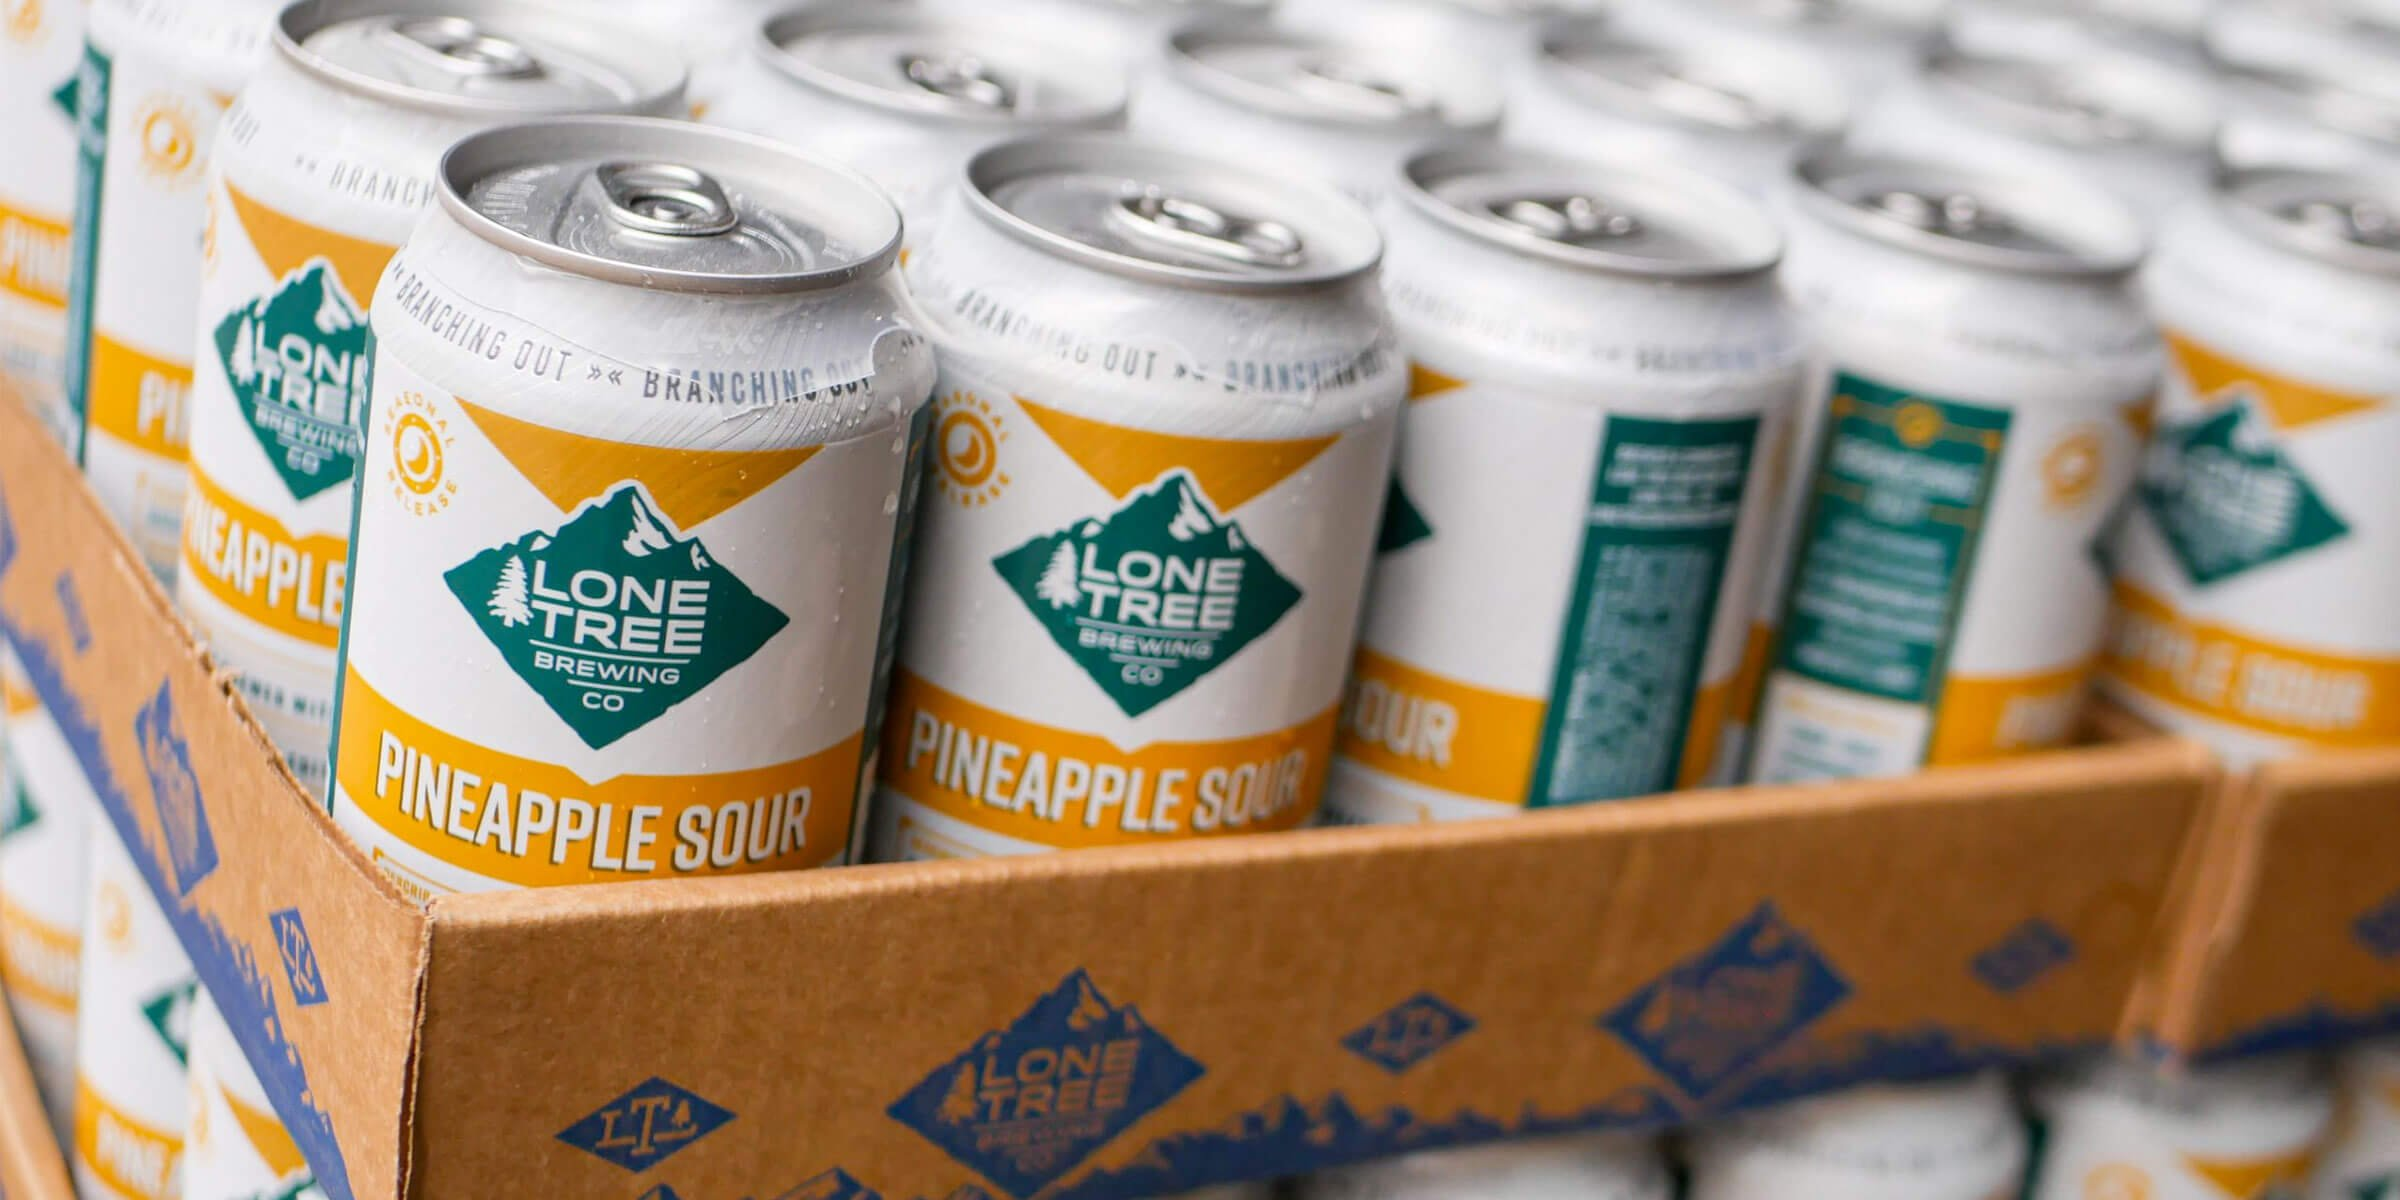 The Pineapple Sour is one of seven new beers and five familiar favorites being released in 2020 by Lone Tree Brewing Co